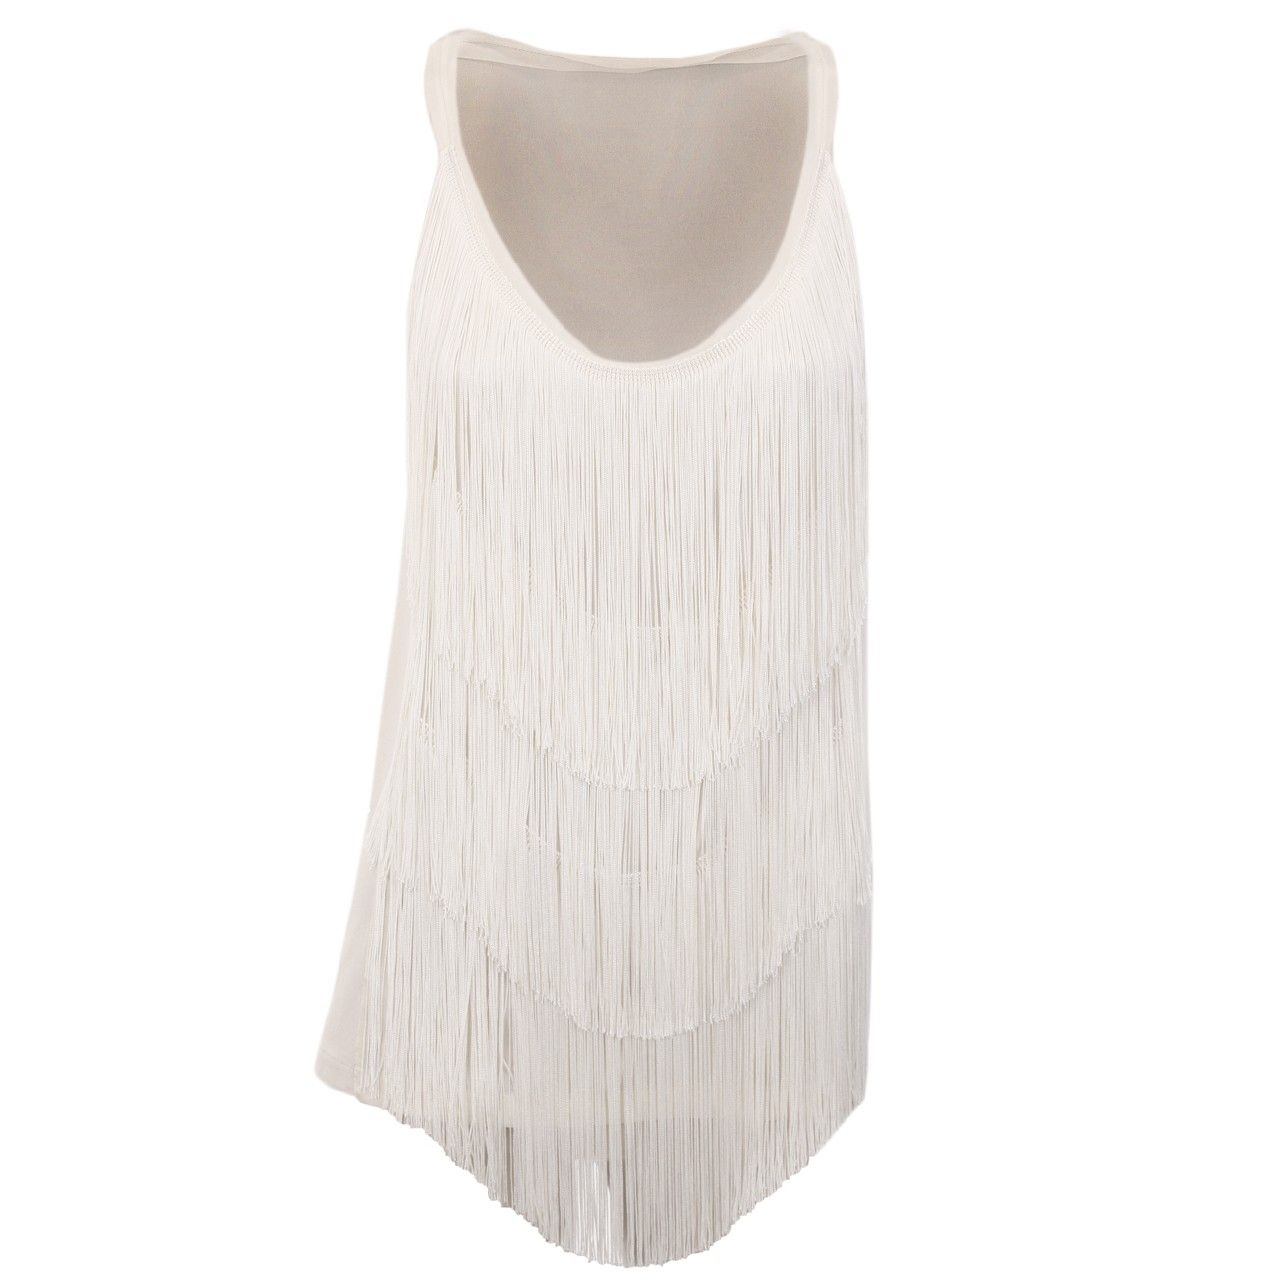 Hirshleifers - Lanvin - Fringe Front Tank with Satin Back  (Ivory), (http://www.hirshleifers.com/sale/ready-to-wear/tops/lanvin-fringe-front-tank-with-satin-back-ivory/)